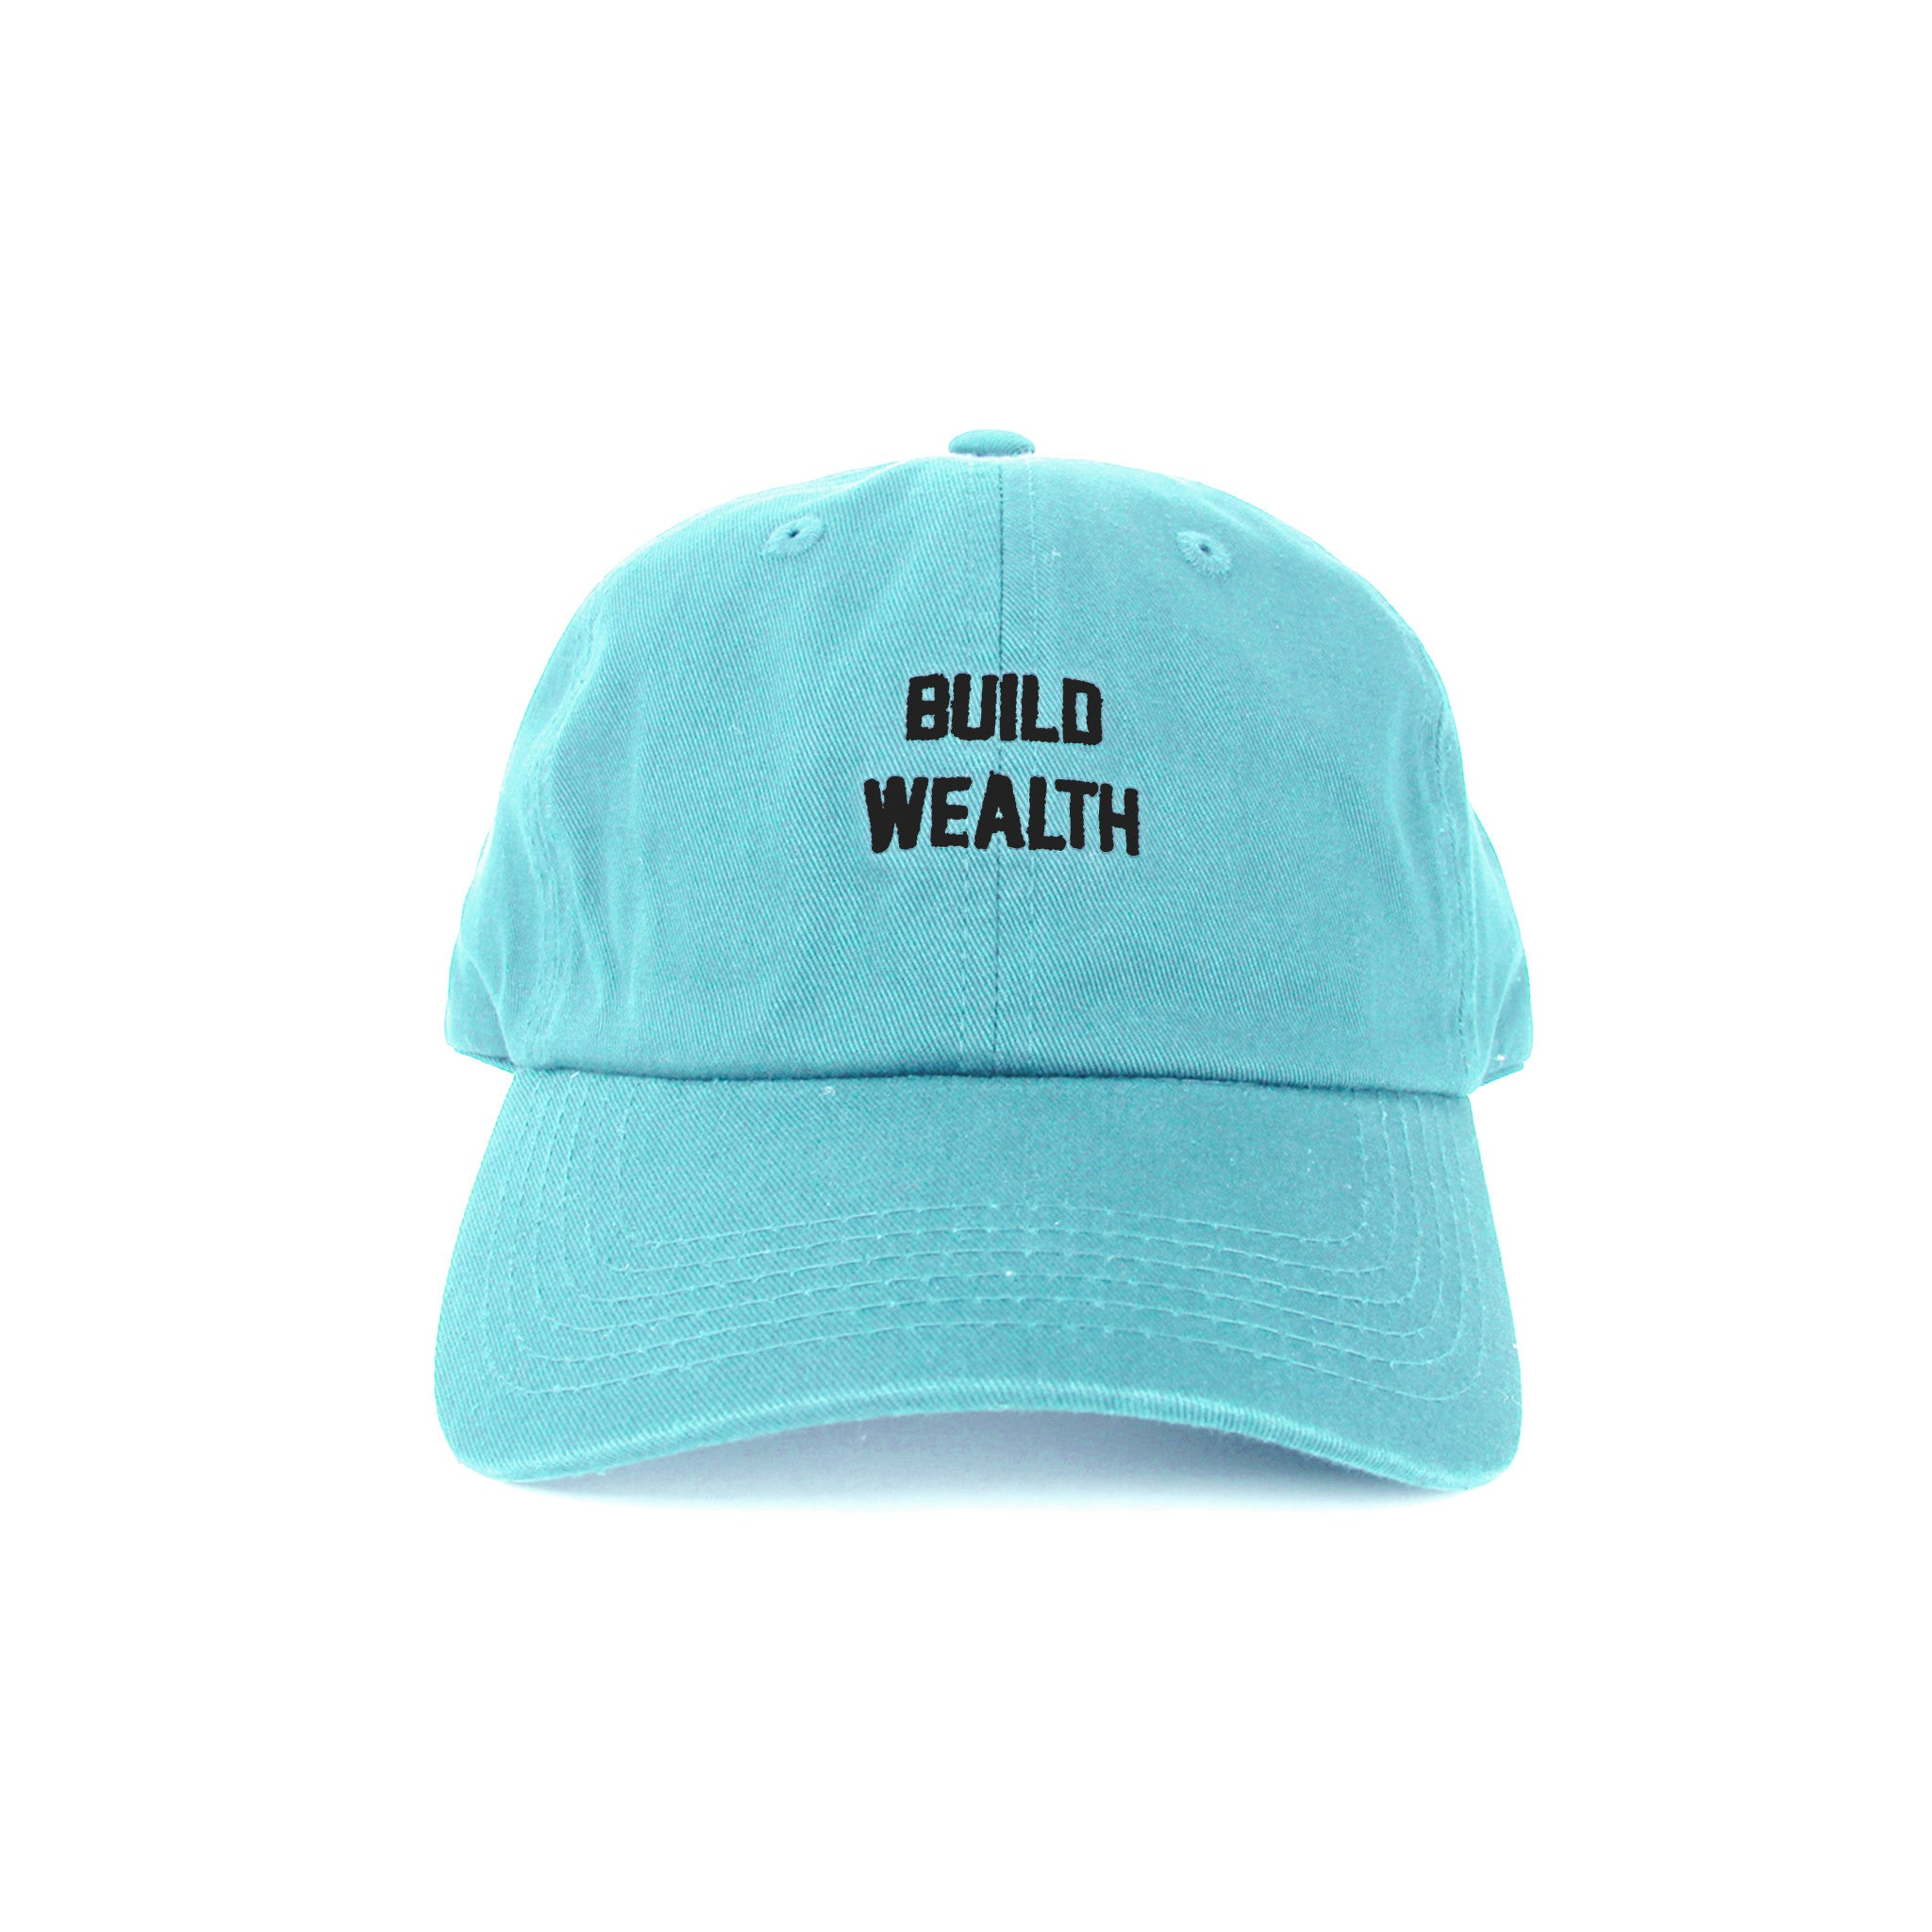 Build Wealth Strapback Dad Hat